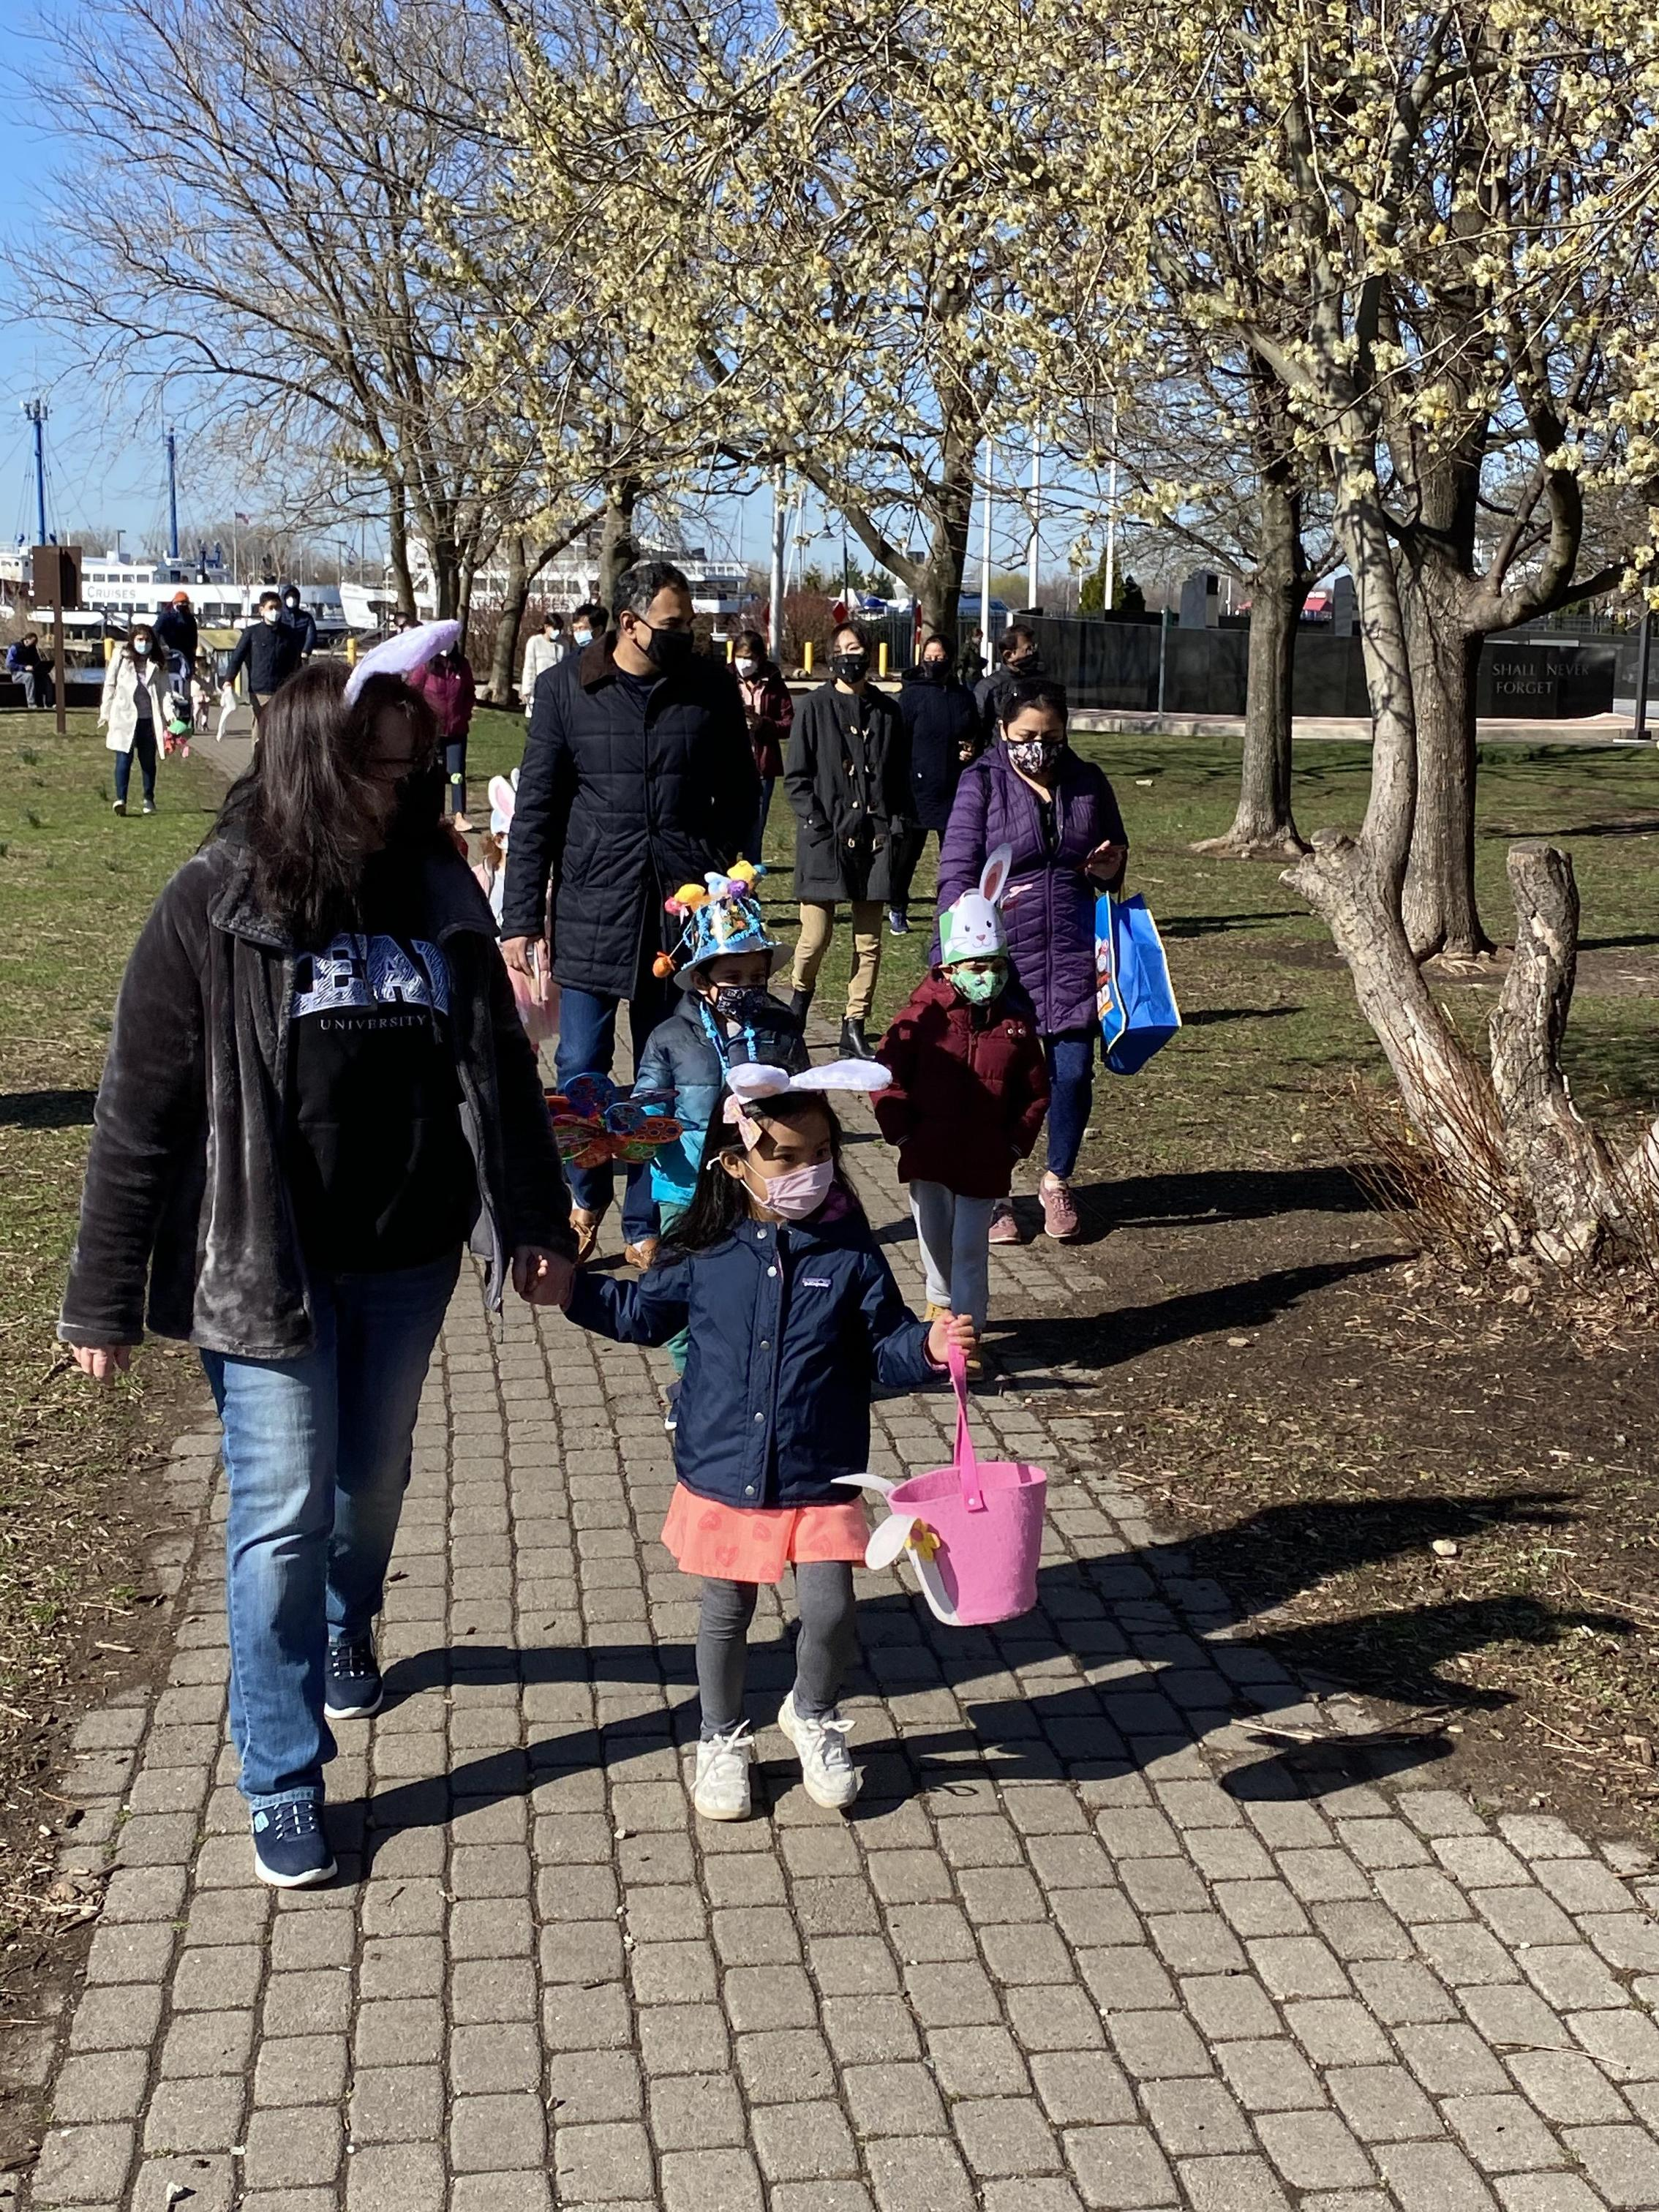 PS 16 Pre-K at the Danforth Ave Early Childhood Center held a Spring Extravaganza today at the Korean War Memorial on Washington St.